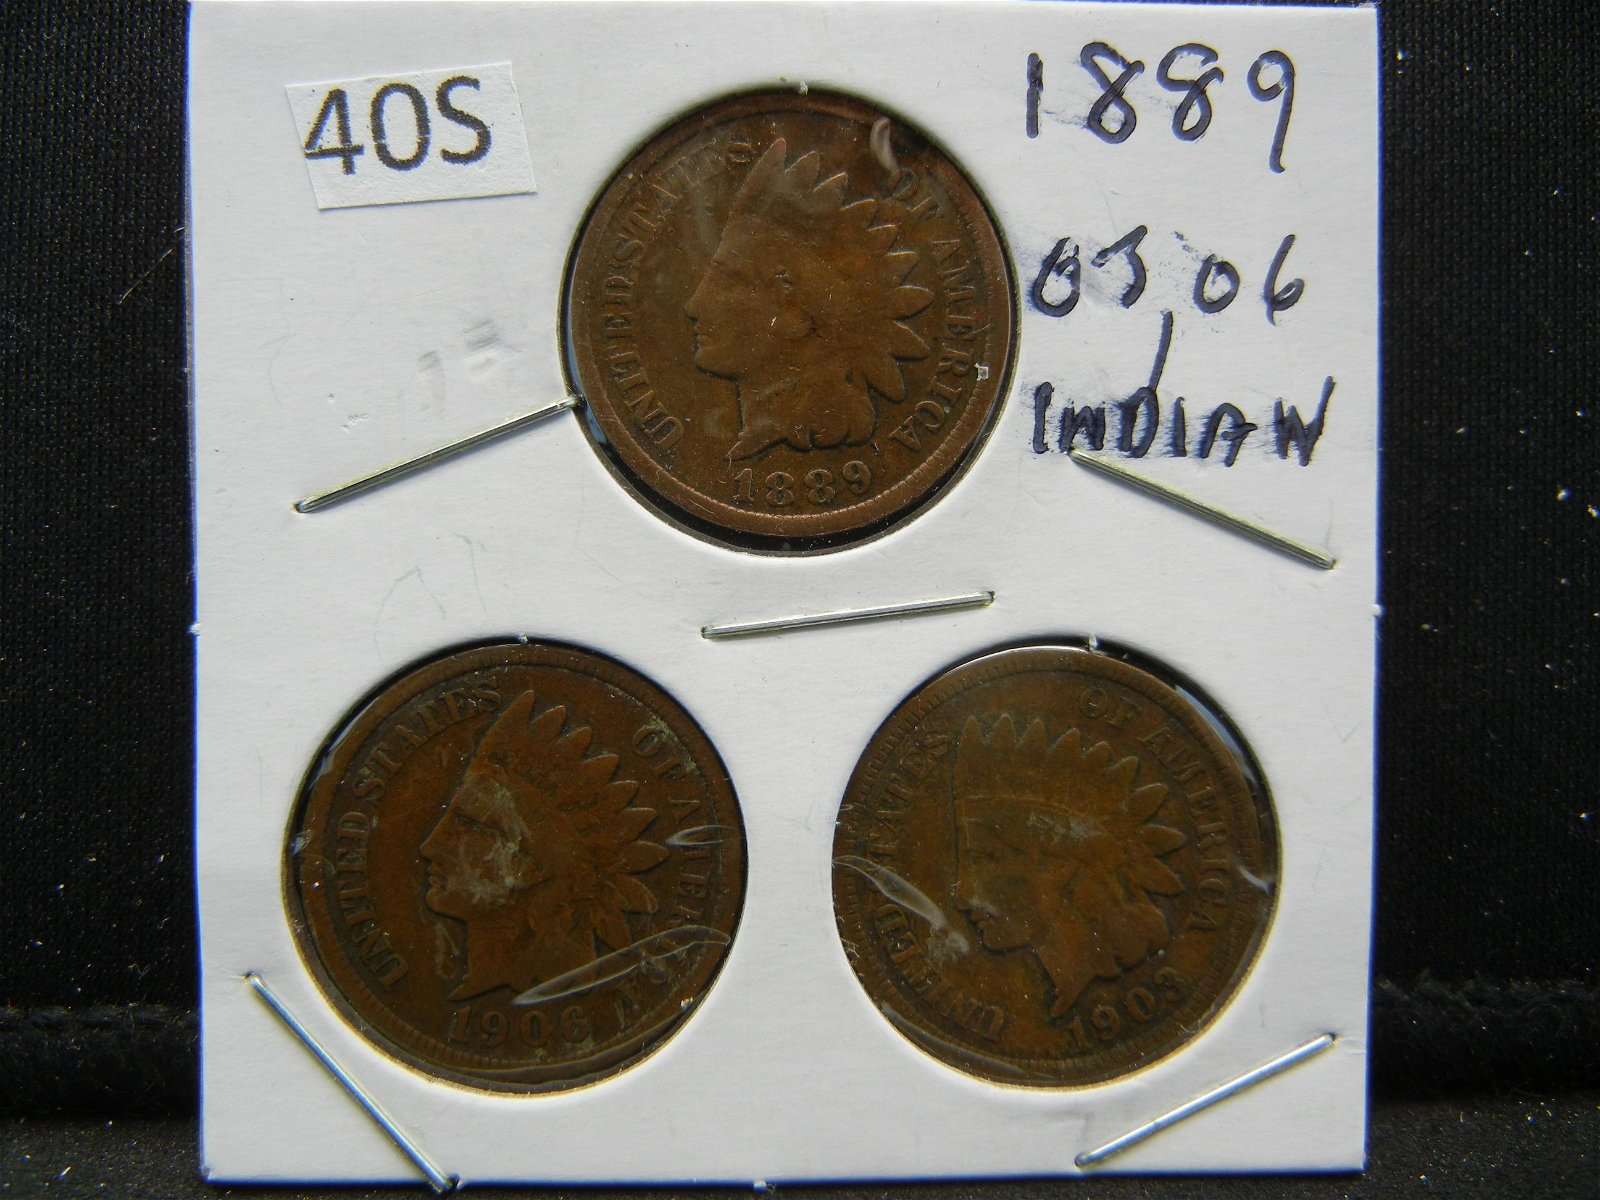 1889, 03, 06 Indian Head Cents